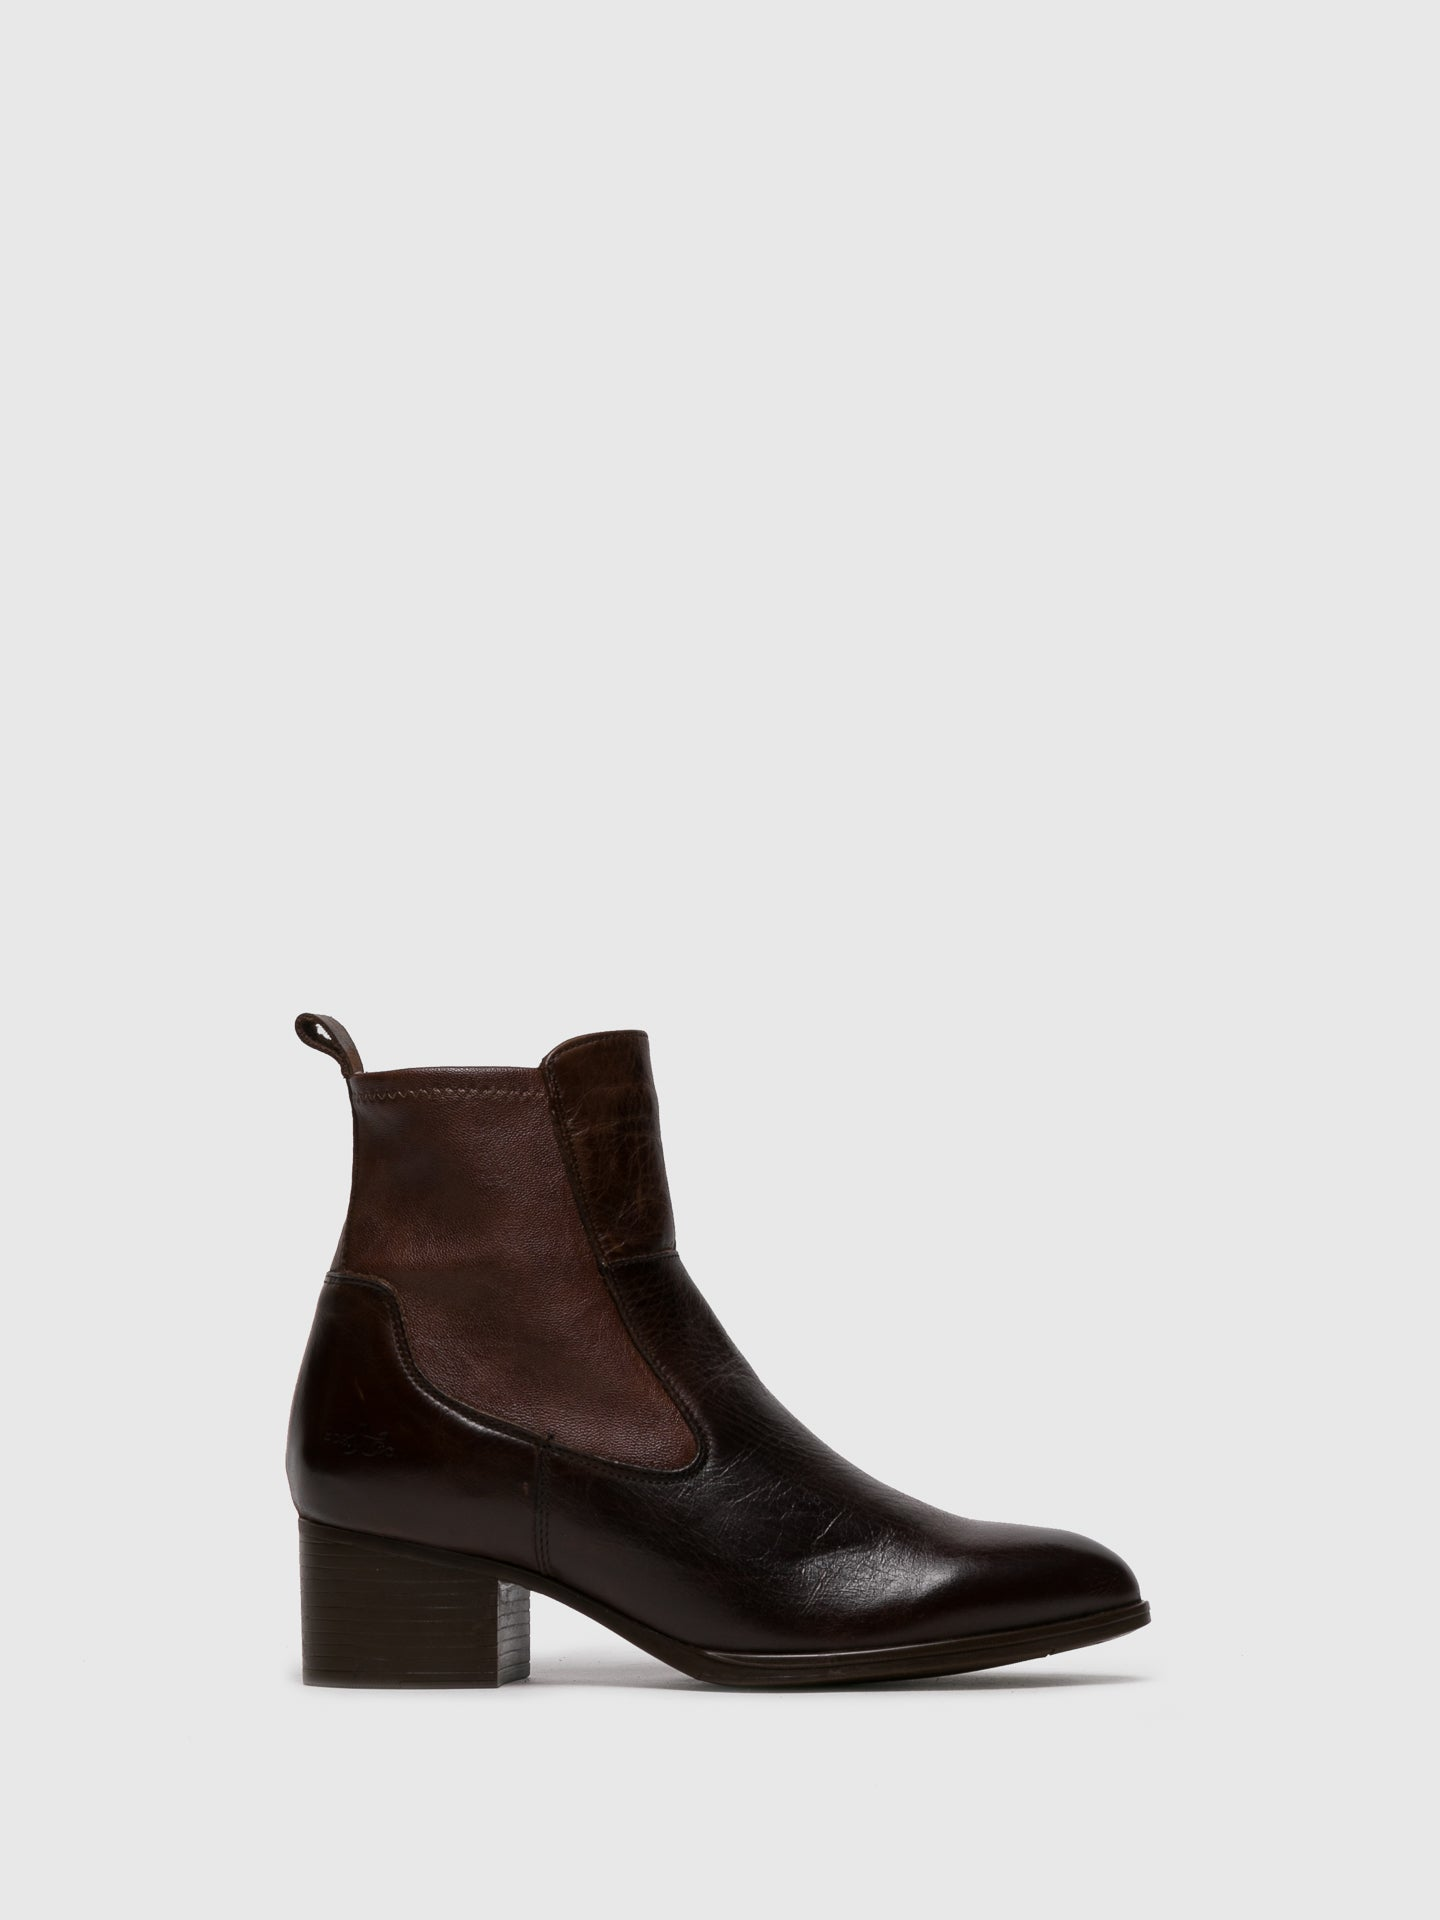 Bos&Co Brown Pointed Toe Ankle Boots